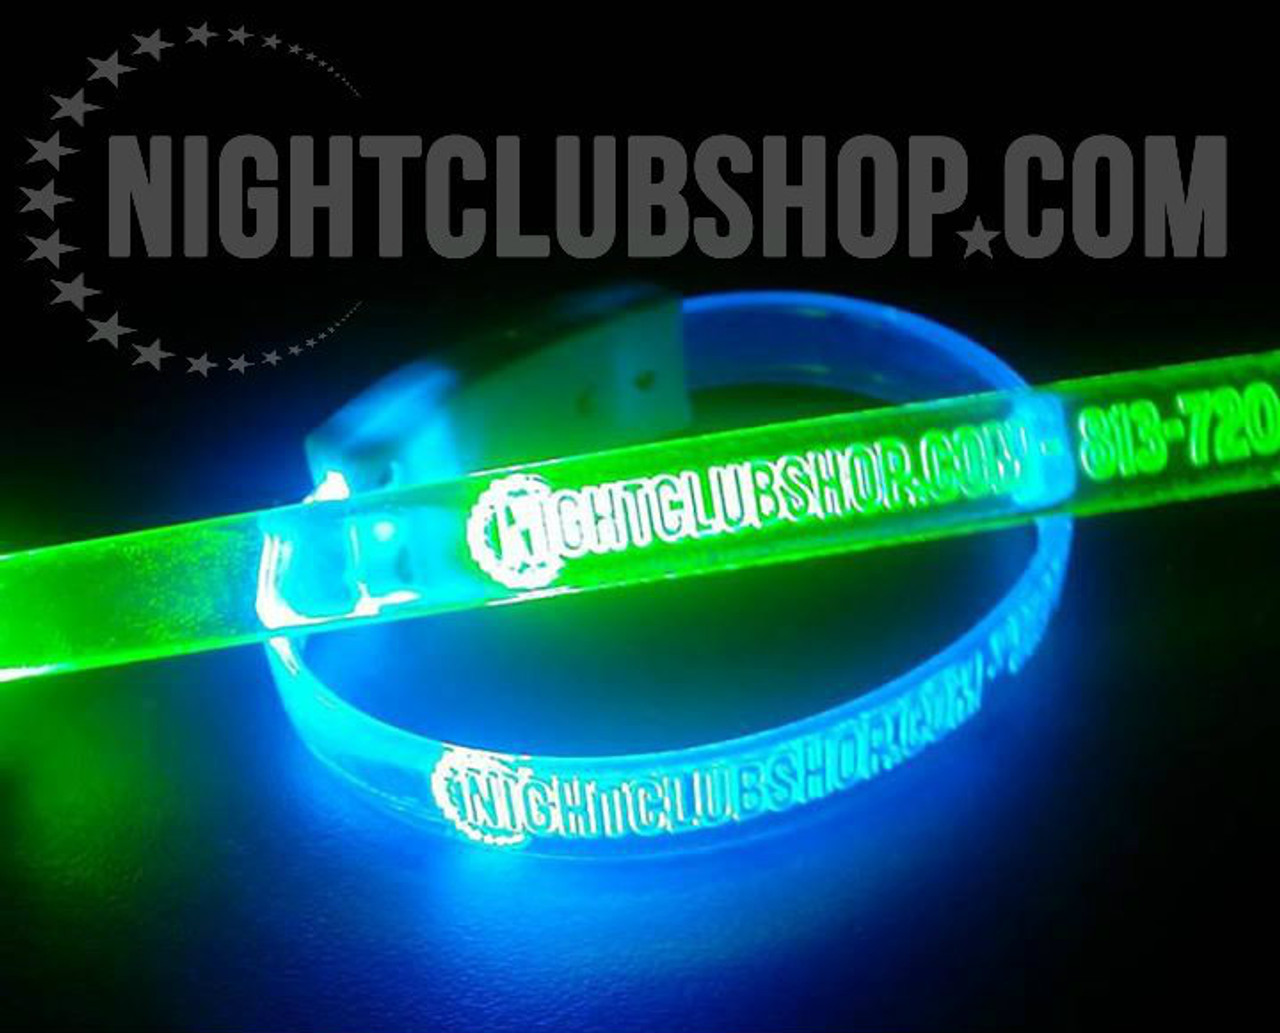 Custom,Engraved,Branded,Personalized, Bulk, LED, Wristband, LED wristband, Bracelet, Glow,Neon, UV, LED Bands, wrist band,wristband, illuminated, light up, wholesale, School, wedding, nightclub, promo, merch, brand,LED wristband